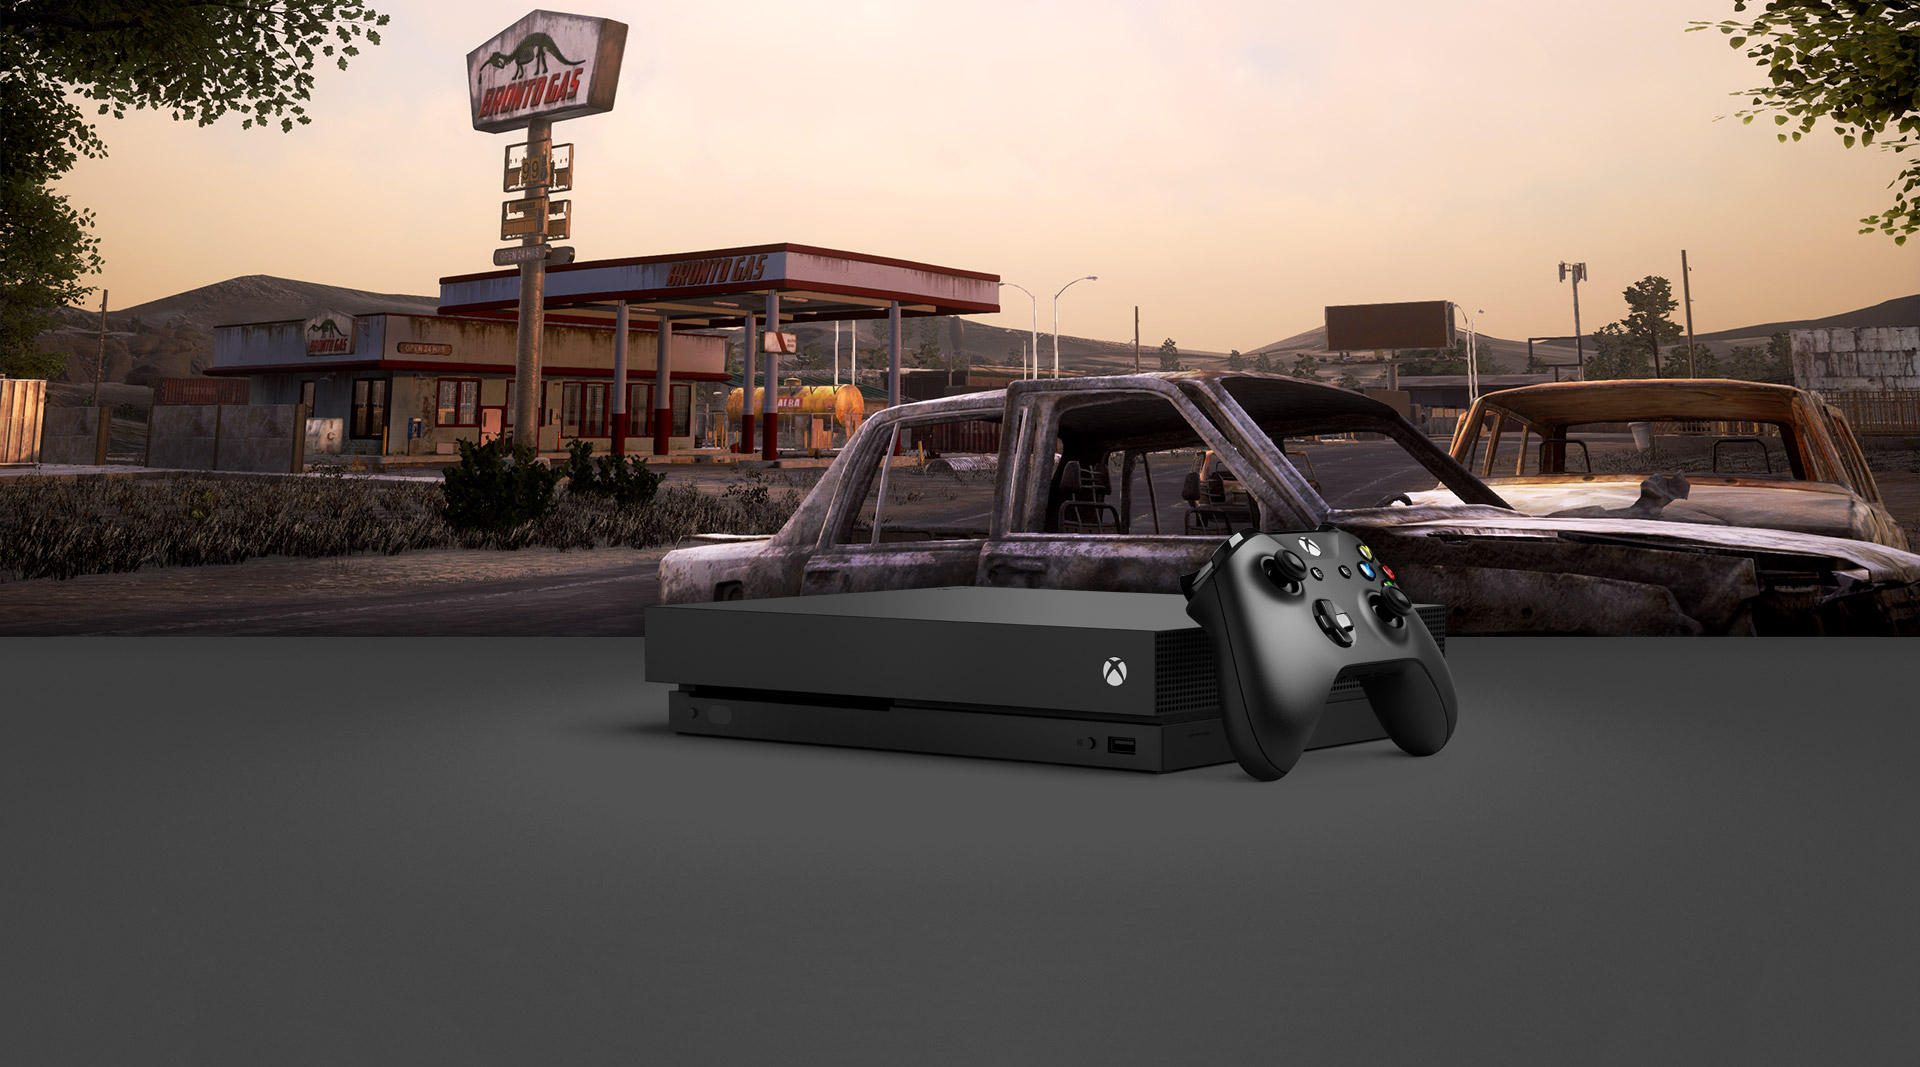 Dramatic scene of abandoned gas station, with two abandoned cars at sunrise, featuring Xbox One X